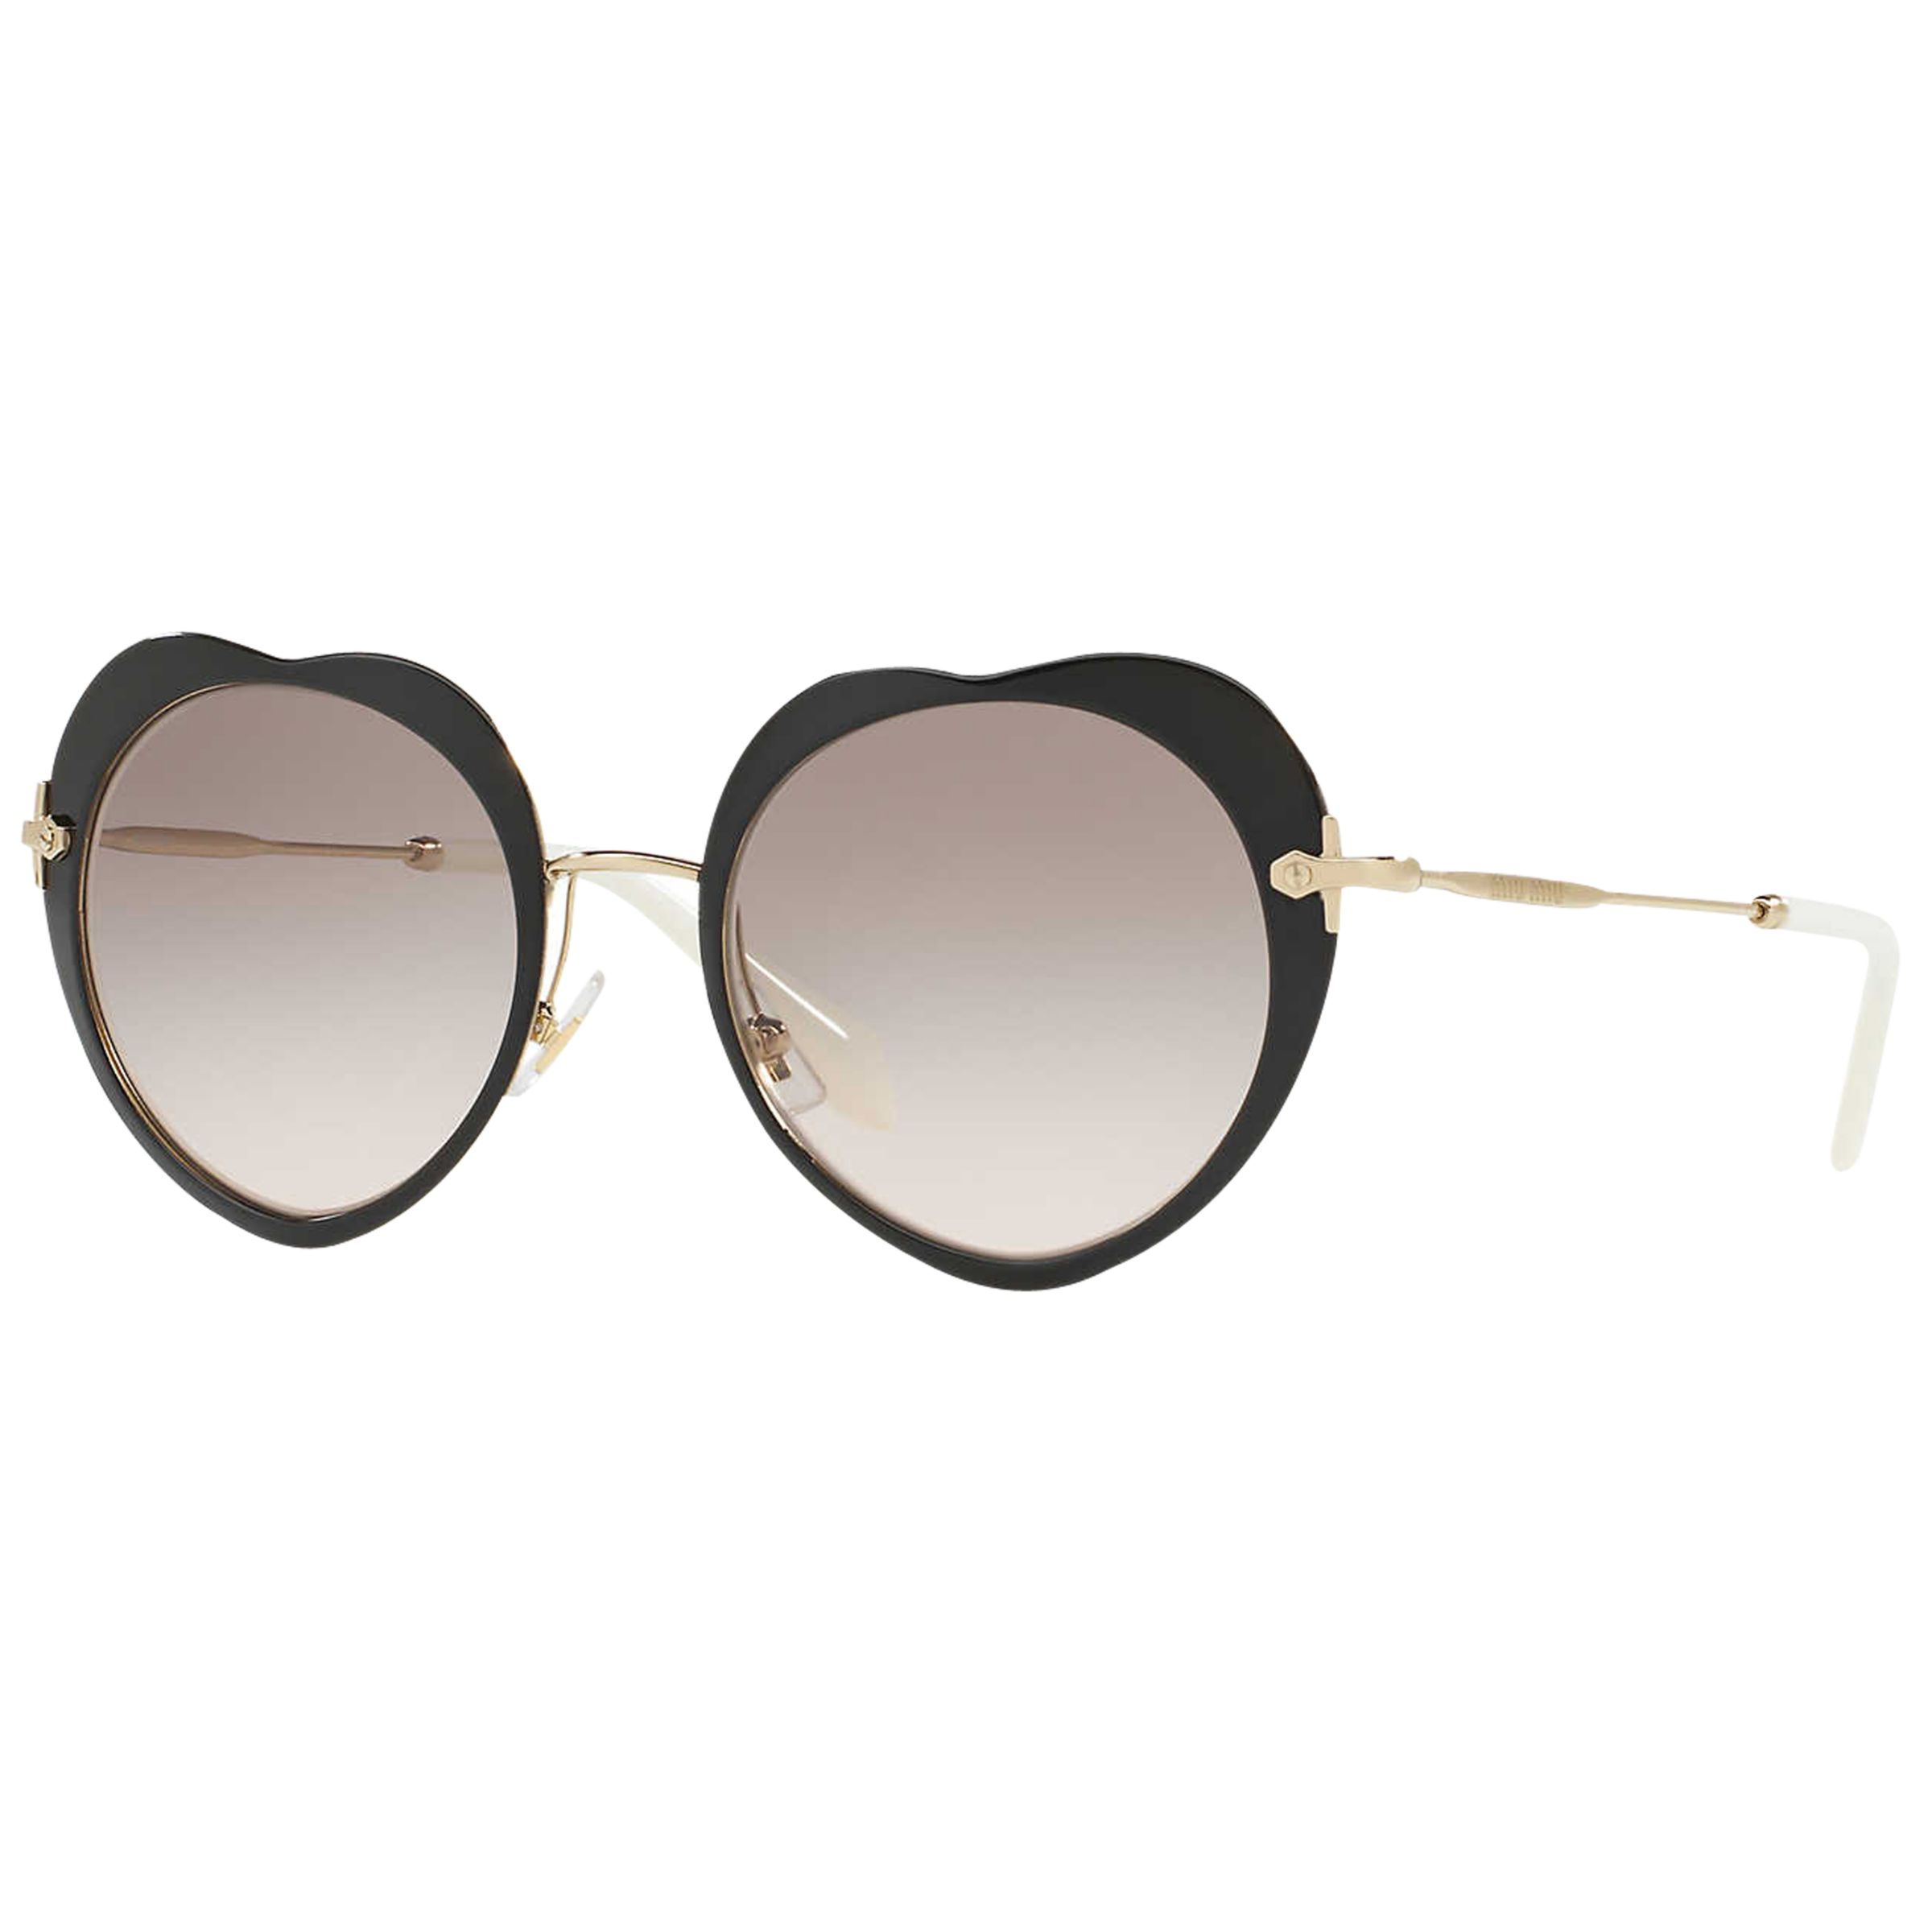 Miu Miu Miu Miu MU 54RS Oval Sunglasses